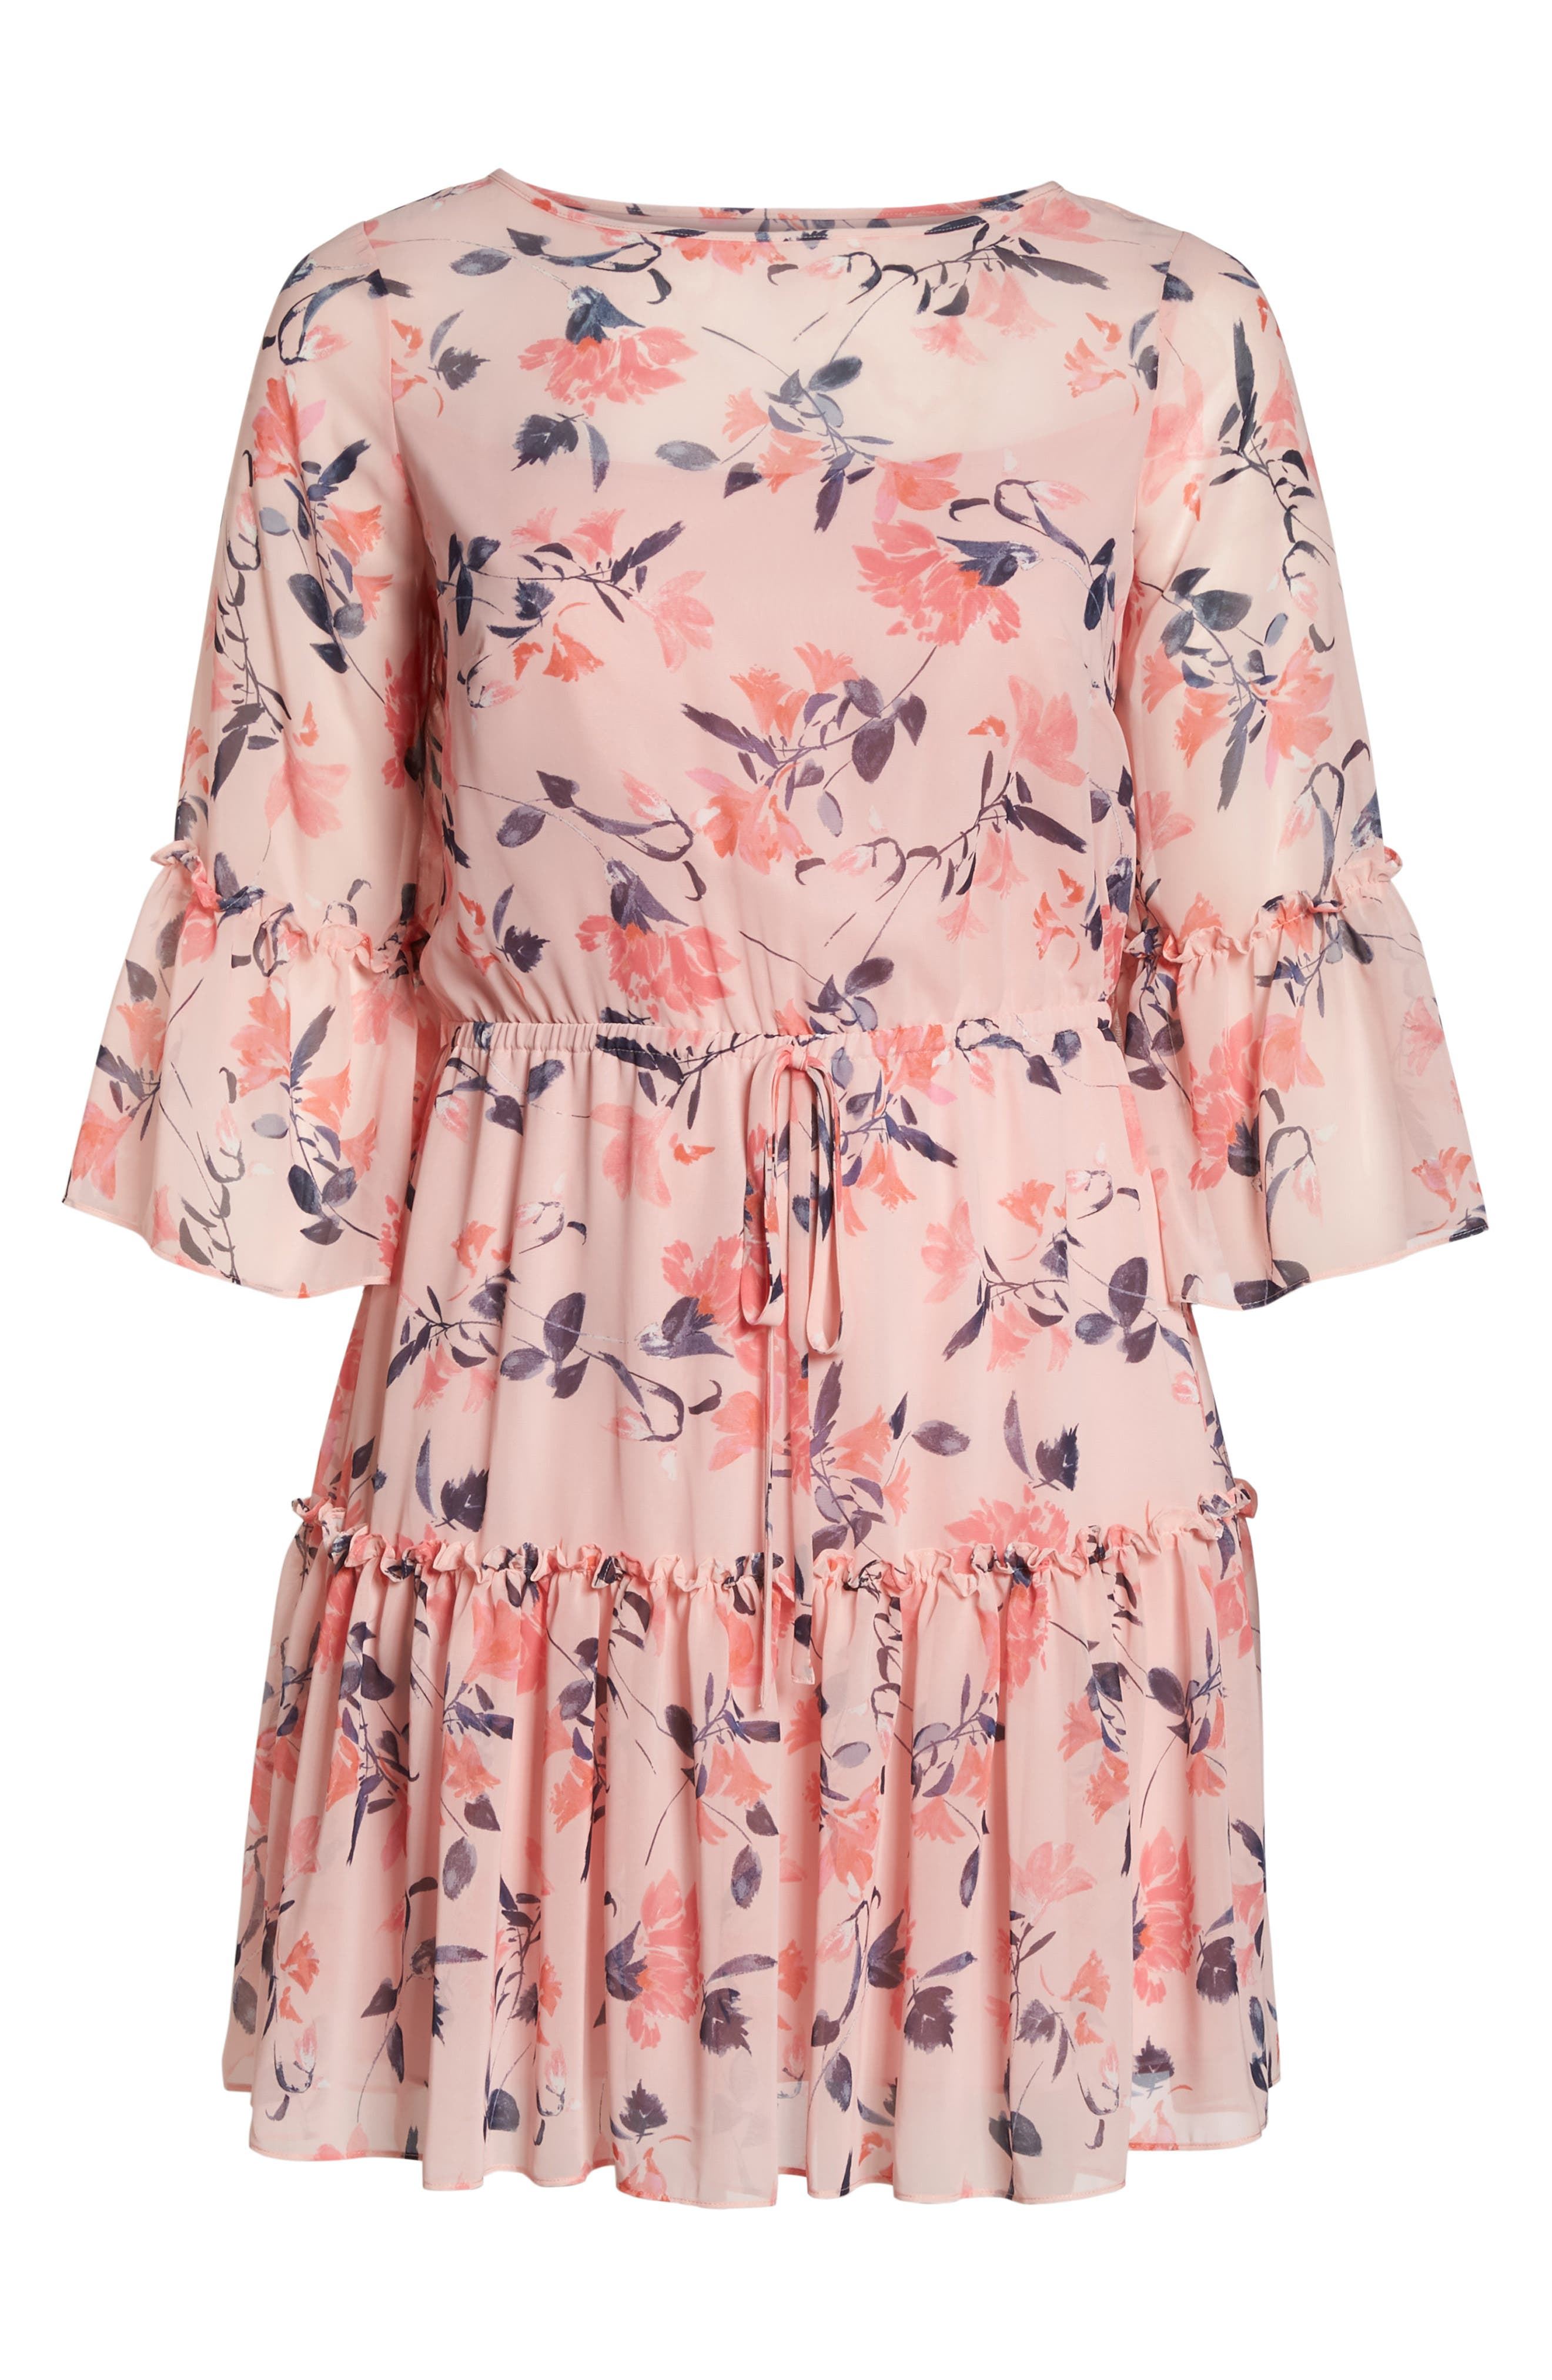 Elza J Floral Bell Sleeve Chiffon Dress,                             Alternate thumbnail 7, color,                             684